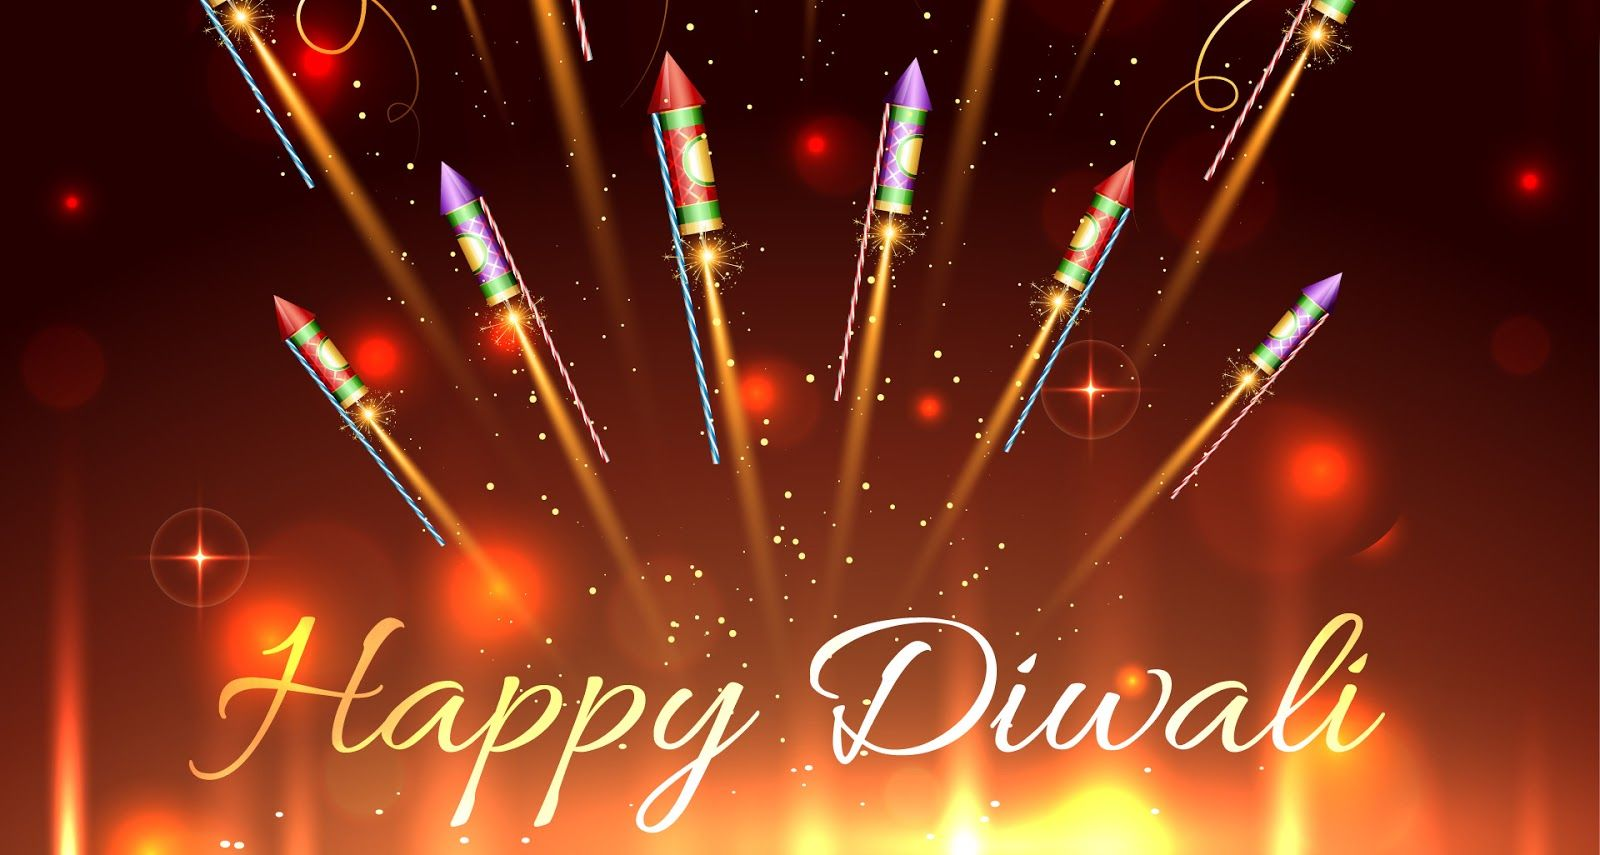 Happy Diwali 2018 Greetings Hd Images Wishes Jokes Sms Messages